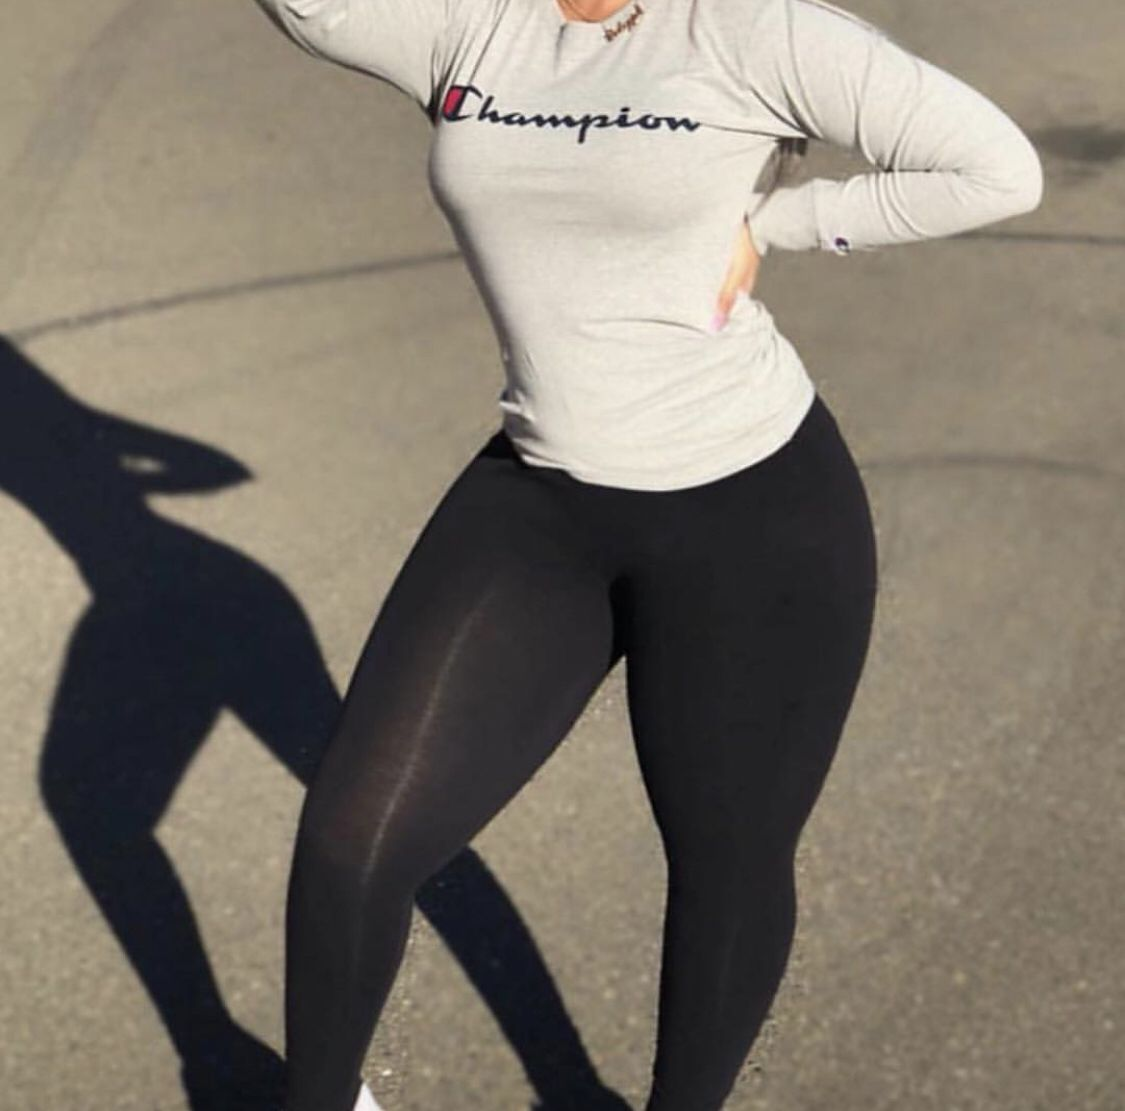 Slim Thick Body Goals Curvy Slim Thick Body Goals Thick Body Goals Body Goals Curvy Slim Thick Body Sport, fitness, skin care, cellulite removal, diet and weight loss concept. slim thick body goals curvy slim